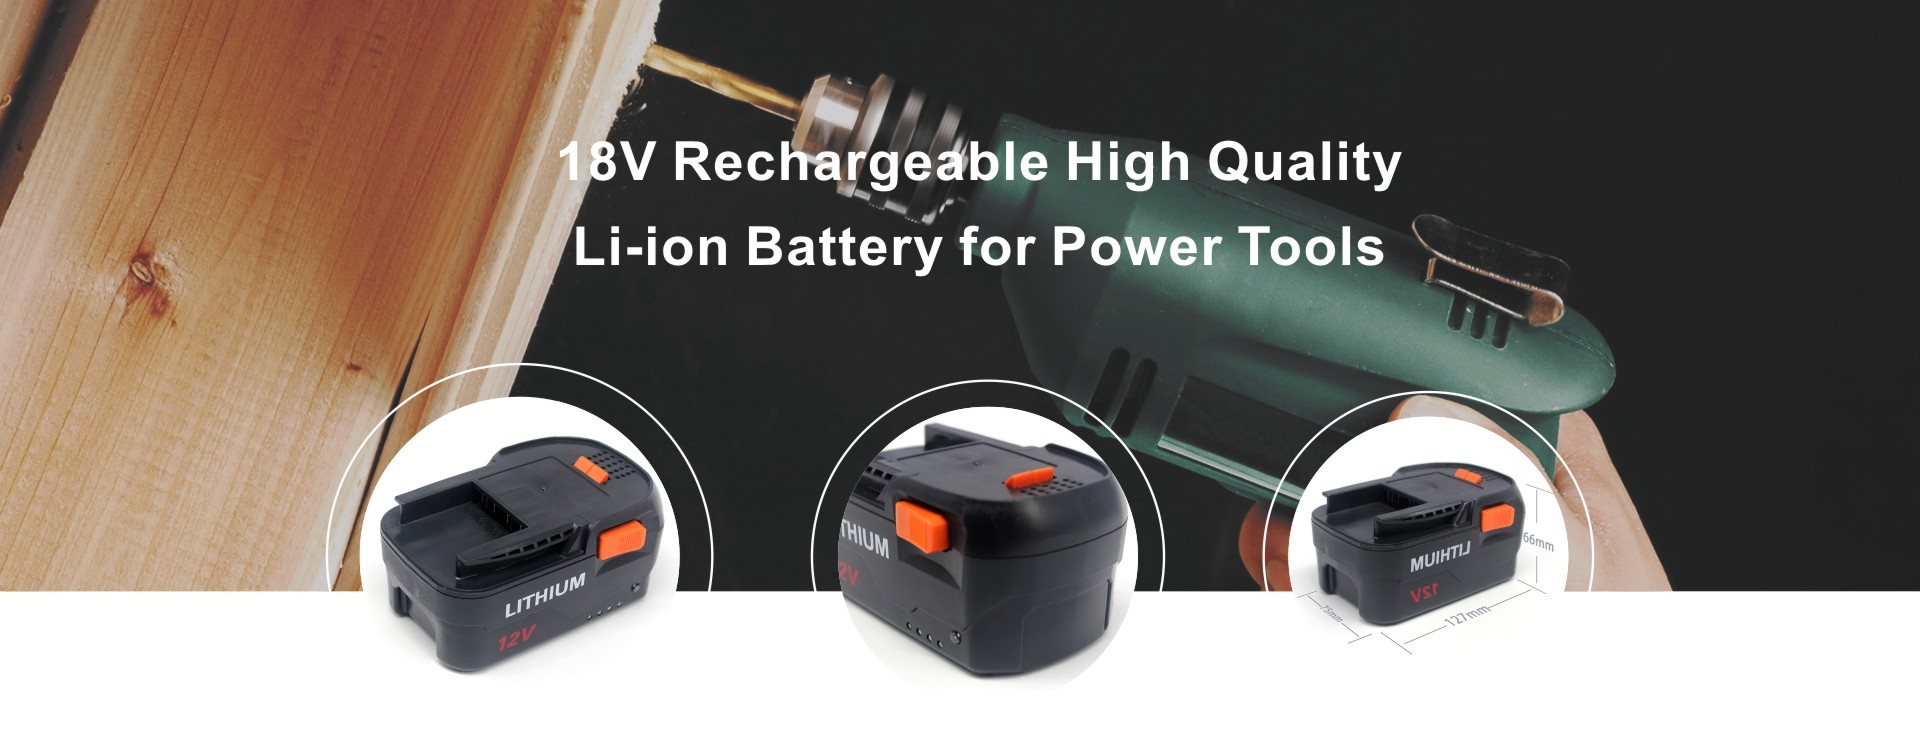 Lithium ion battery,18650 Battery,Rechargeable batteries,Lithium battery,Battery pack,Rechargeable battery manufacturer